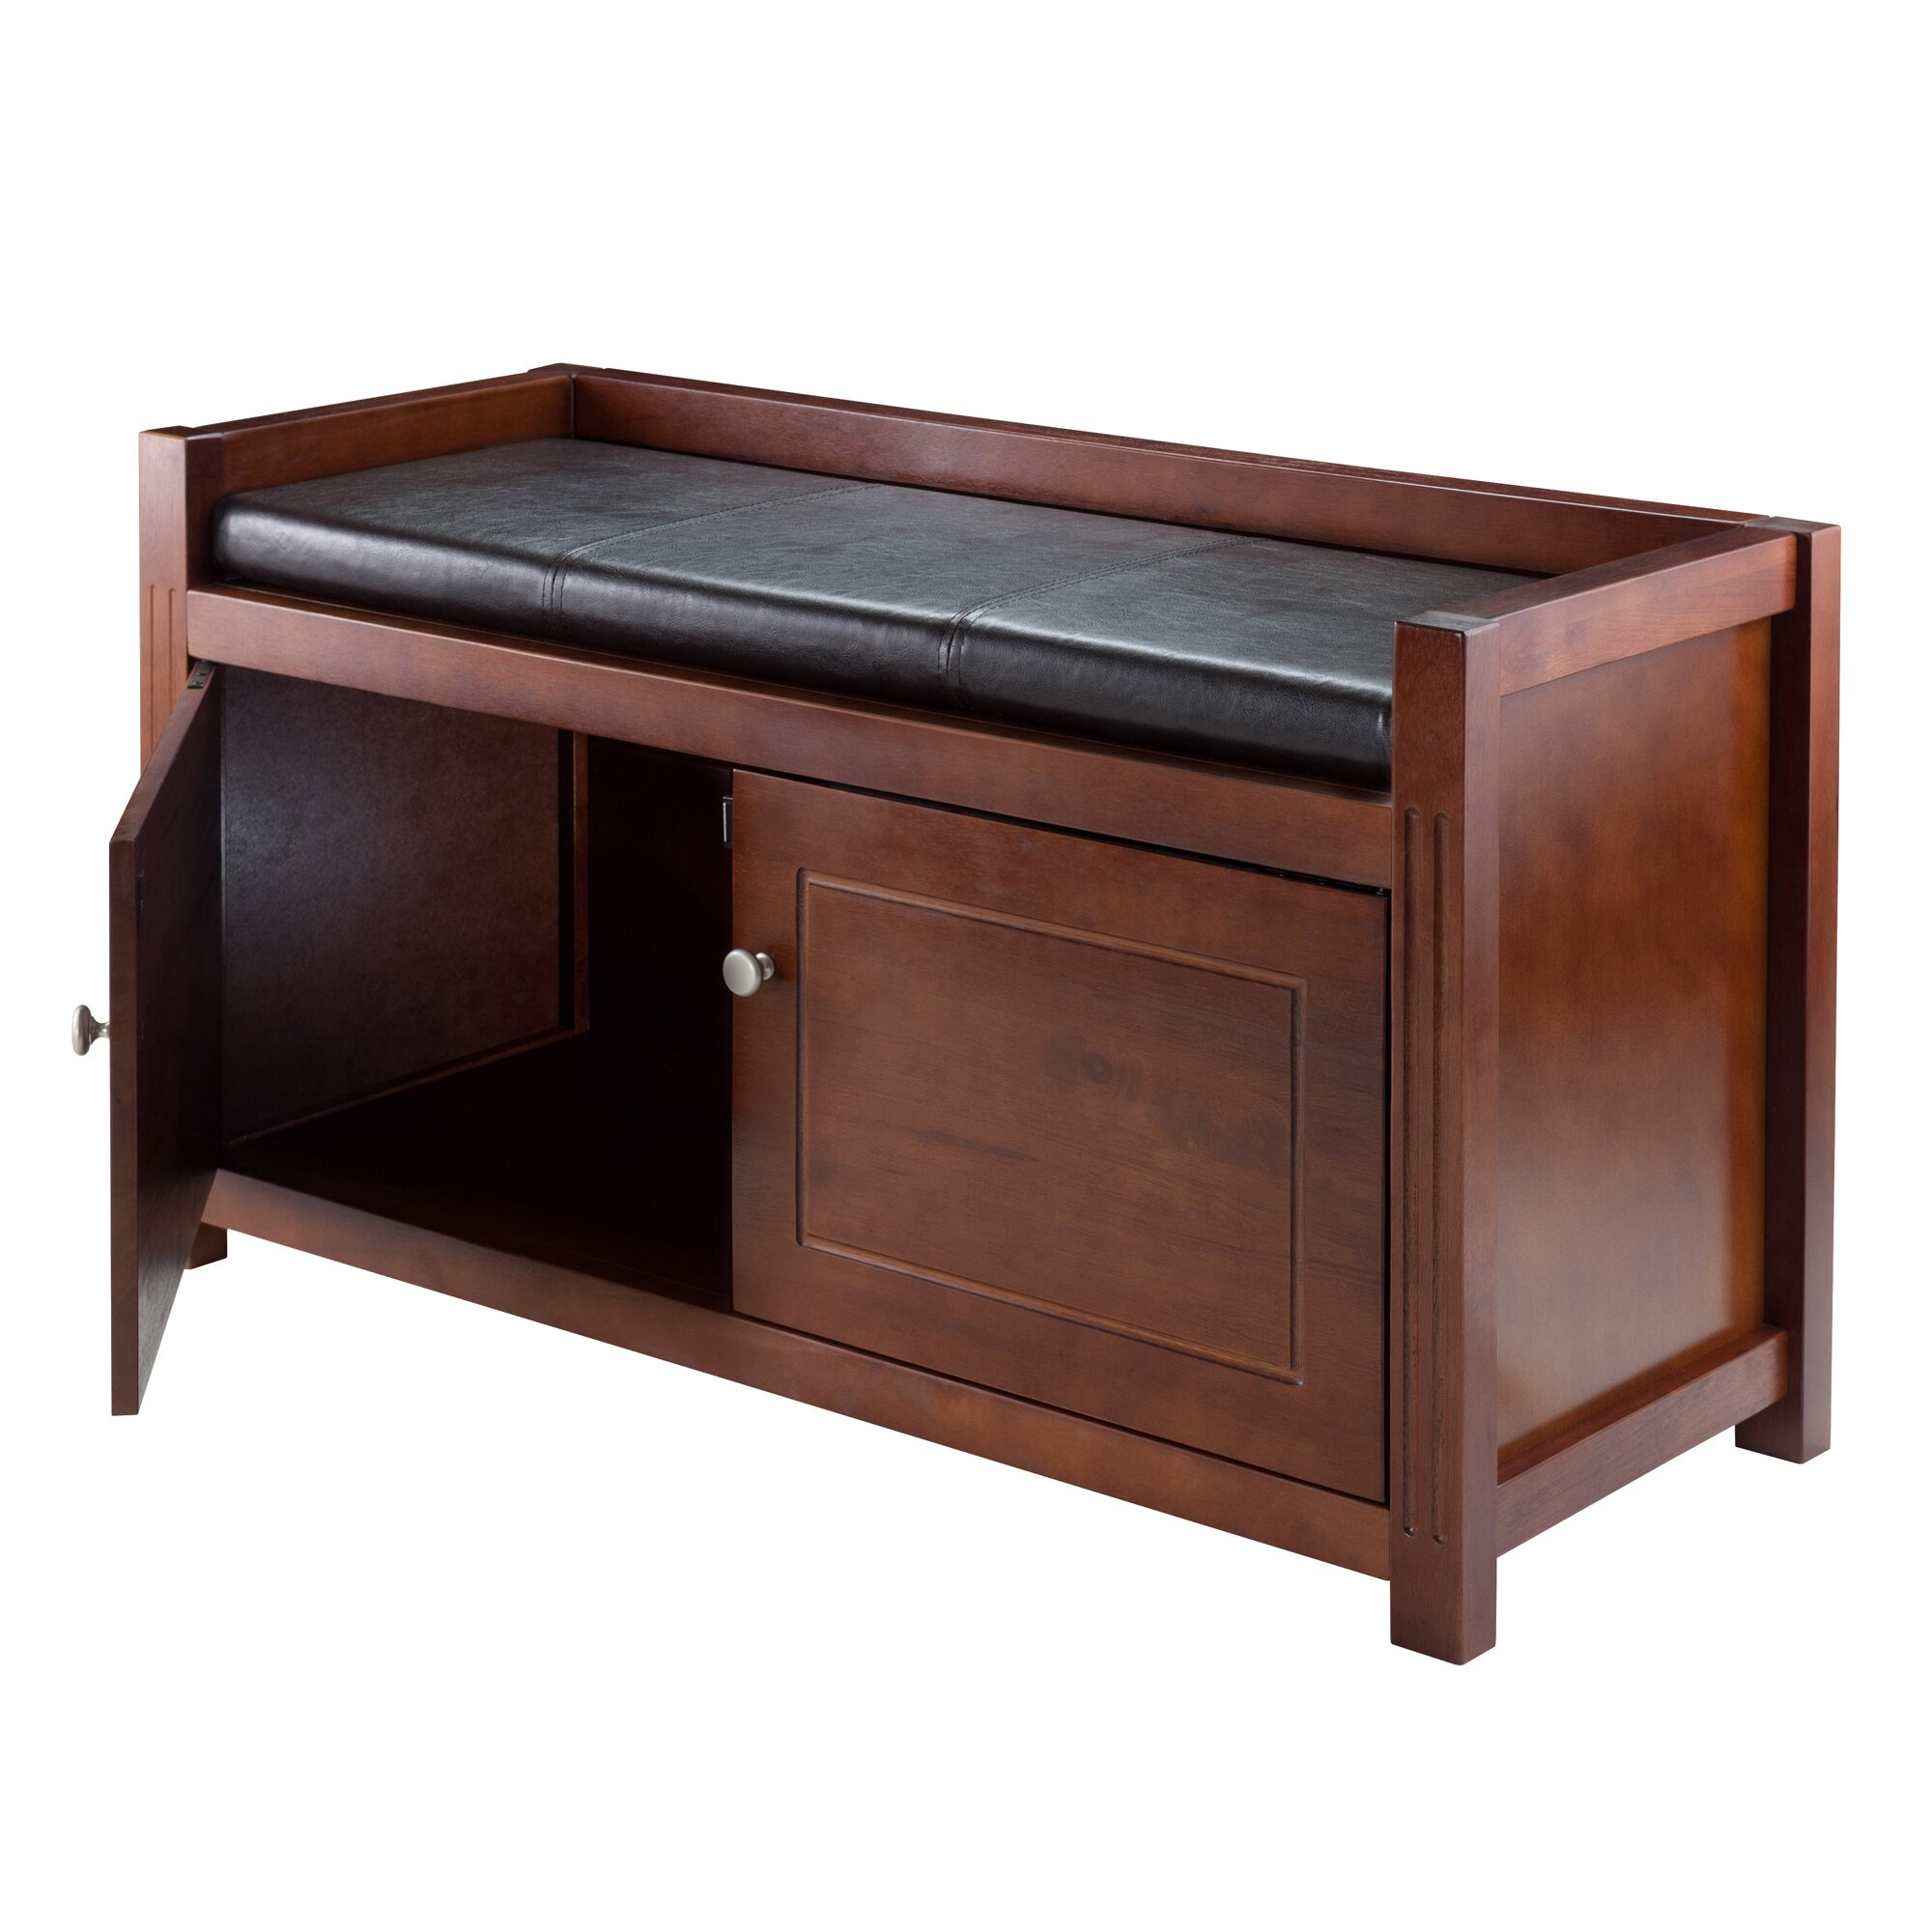 Alcott Hill Hall Wood Storage Bench Reviews Wayfair